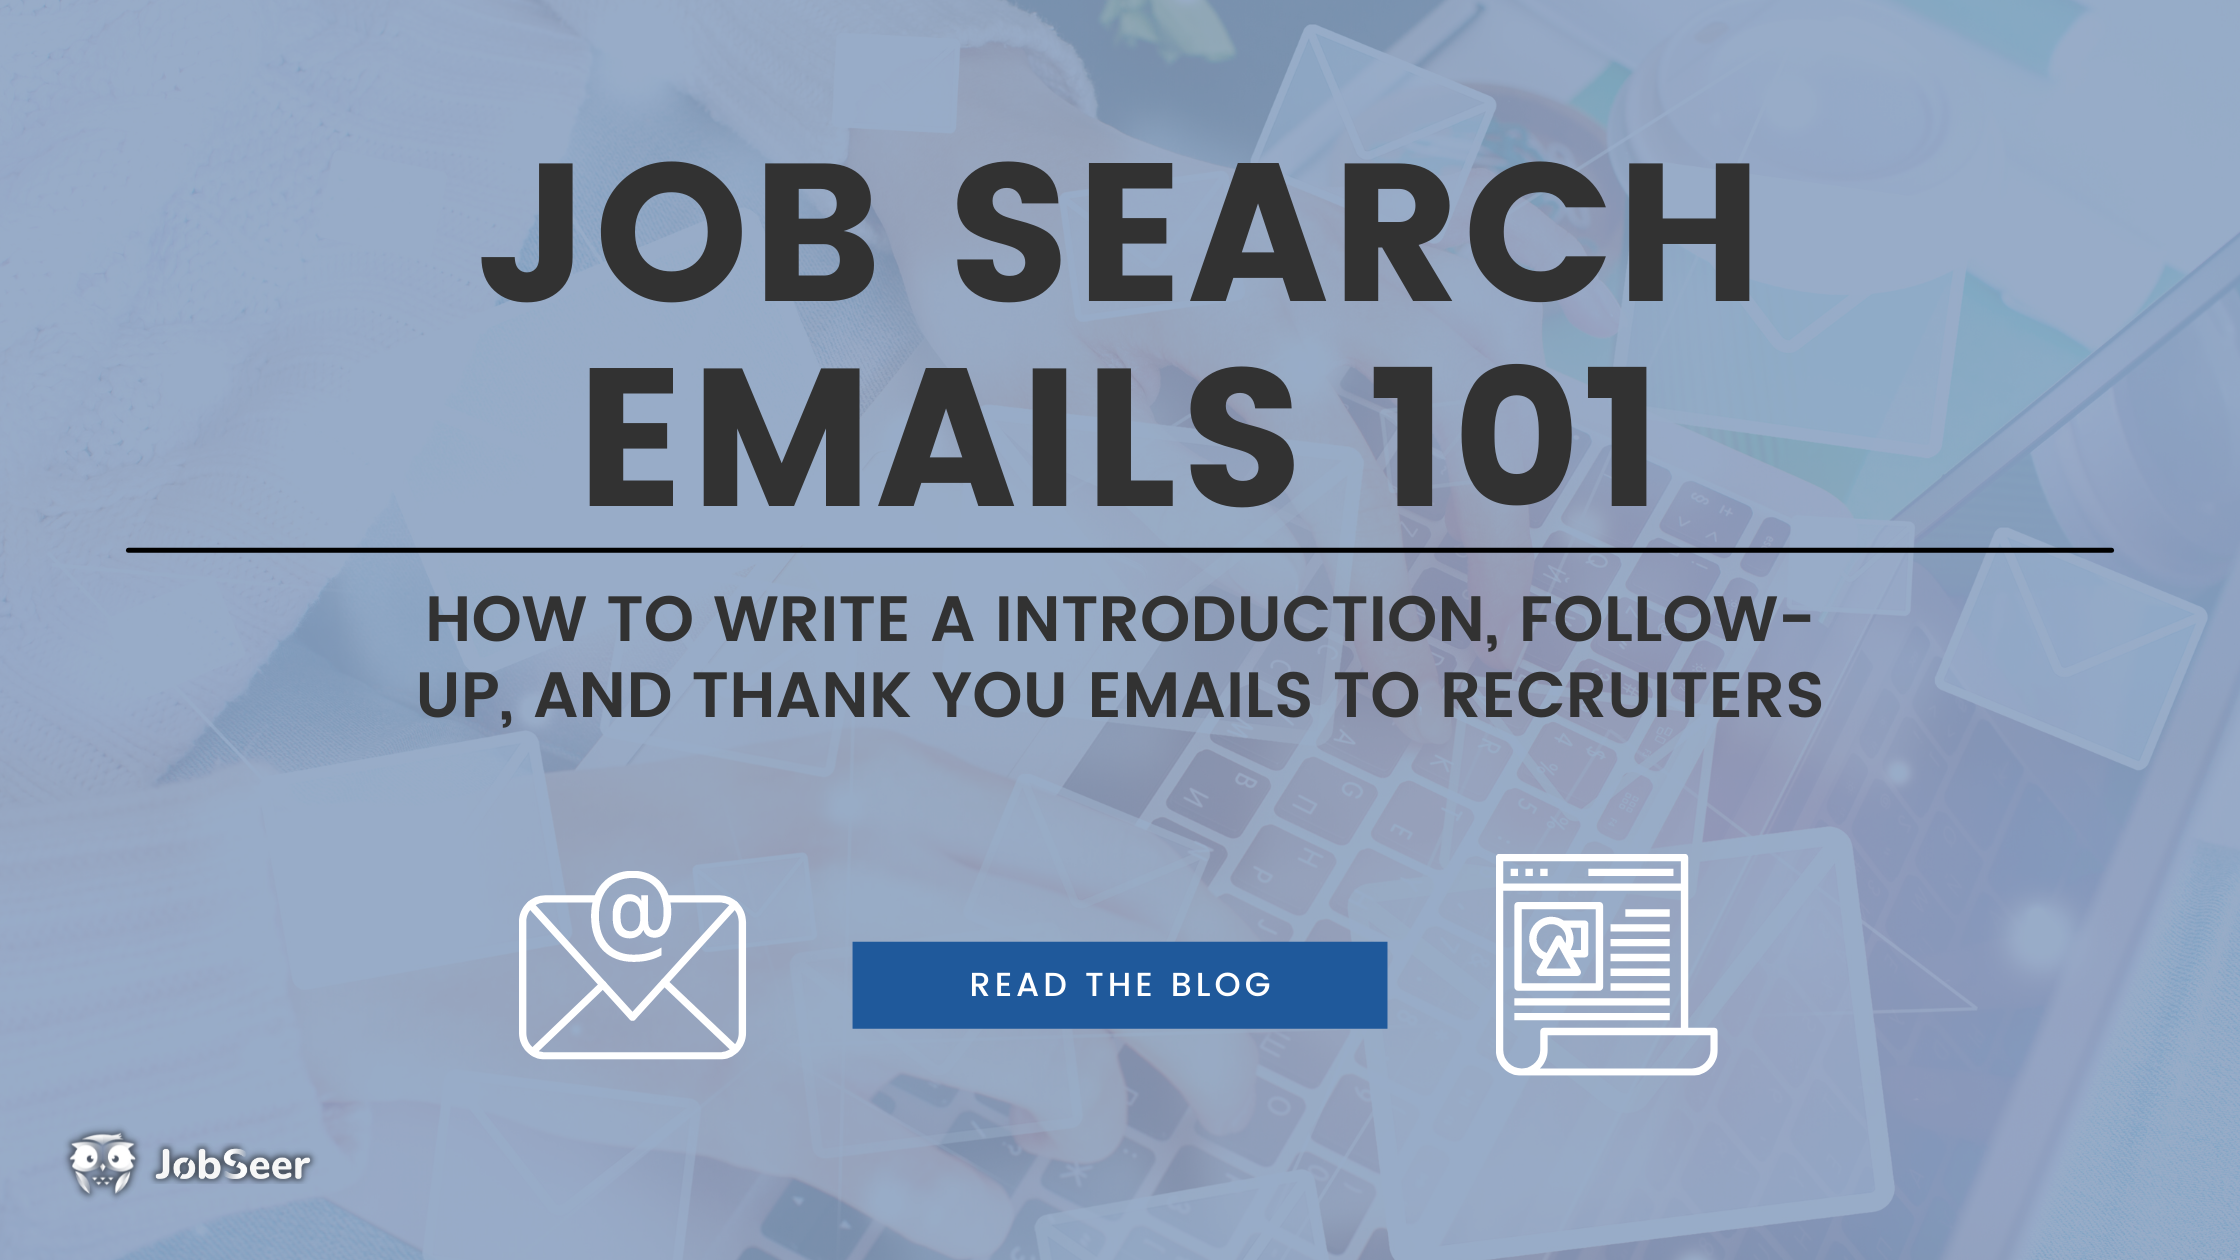 Job Search Email 101: How to write a introduction, thank you, and follow-up emails to recruiters [With Email Templates]